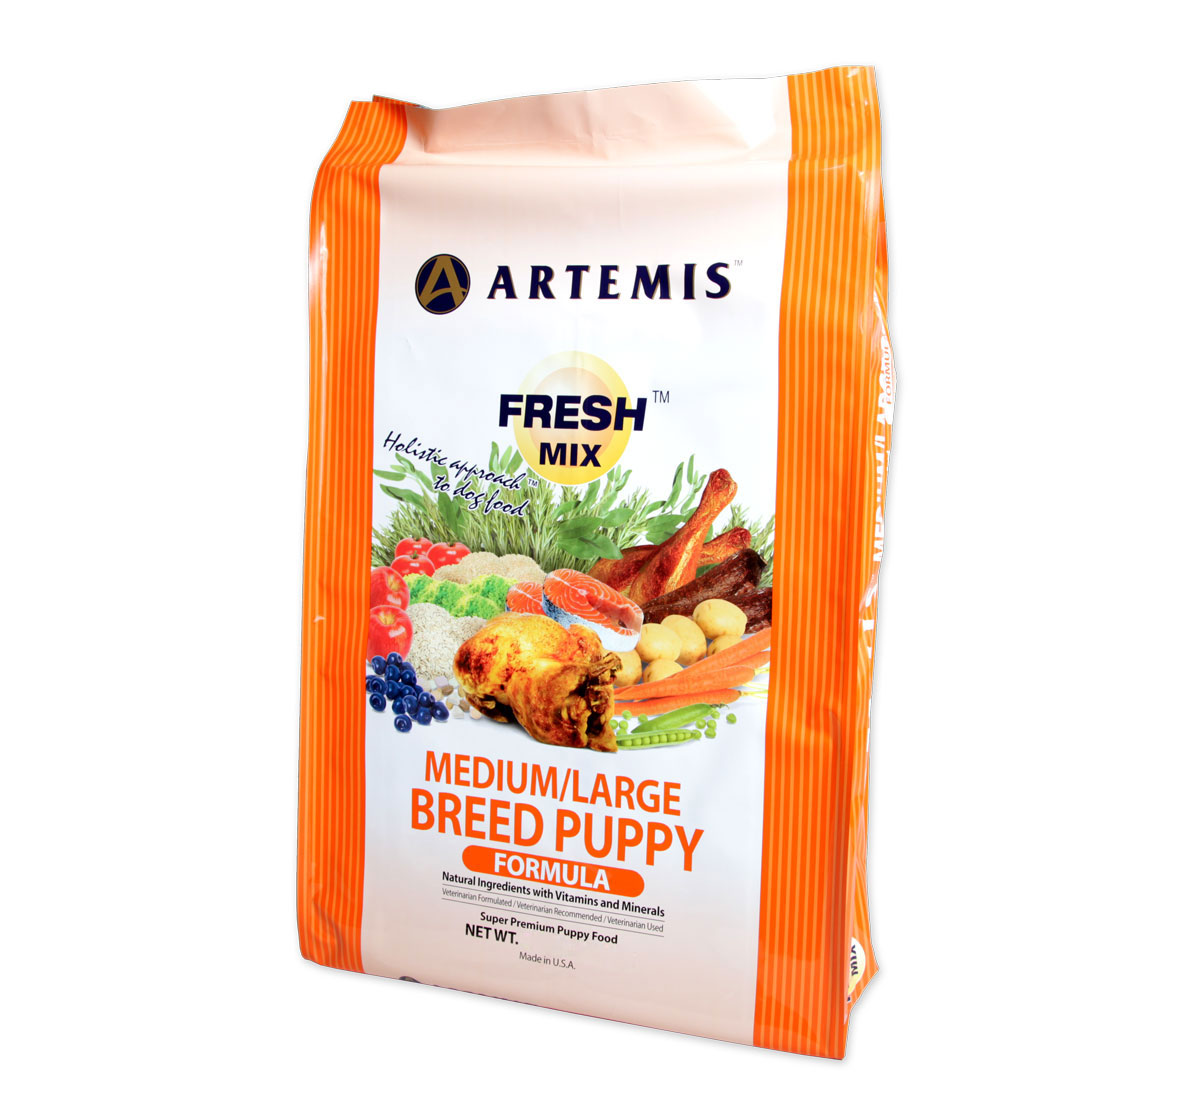 Artemis Large Breed Dog Food